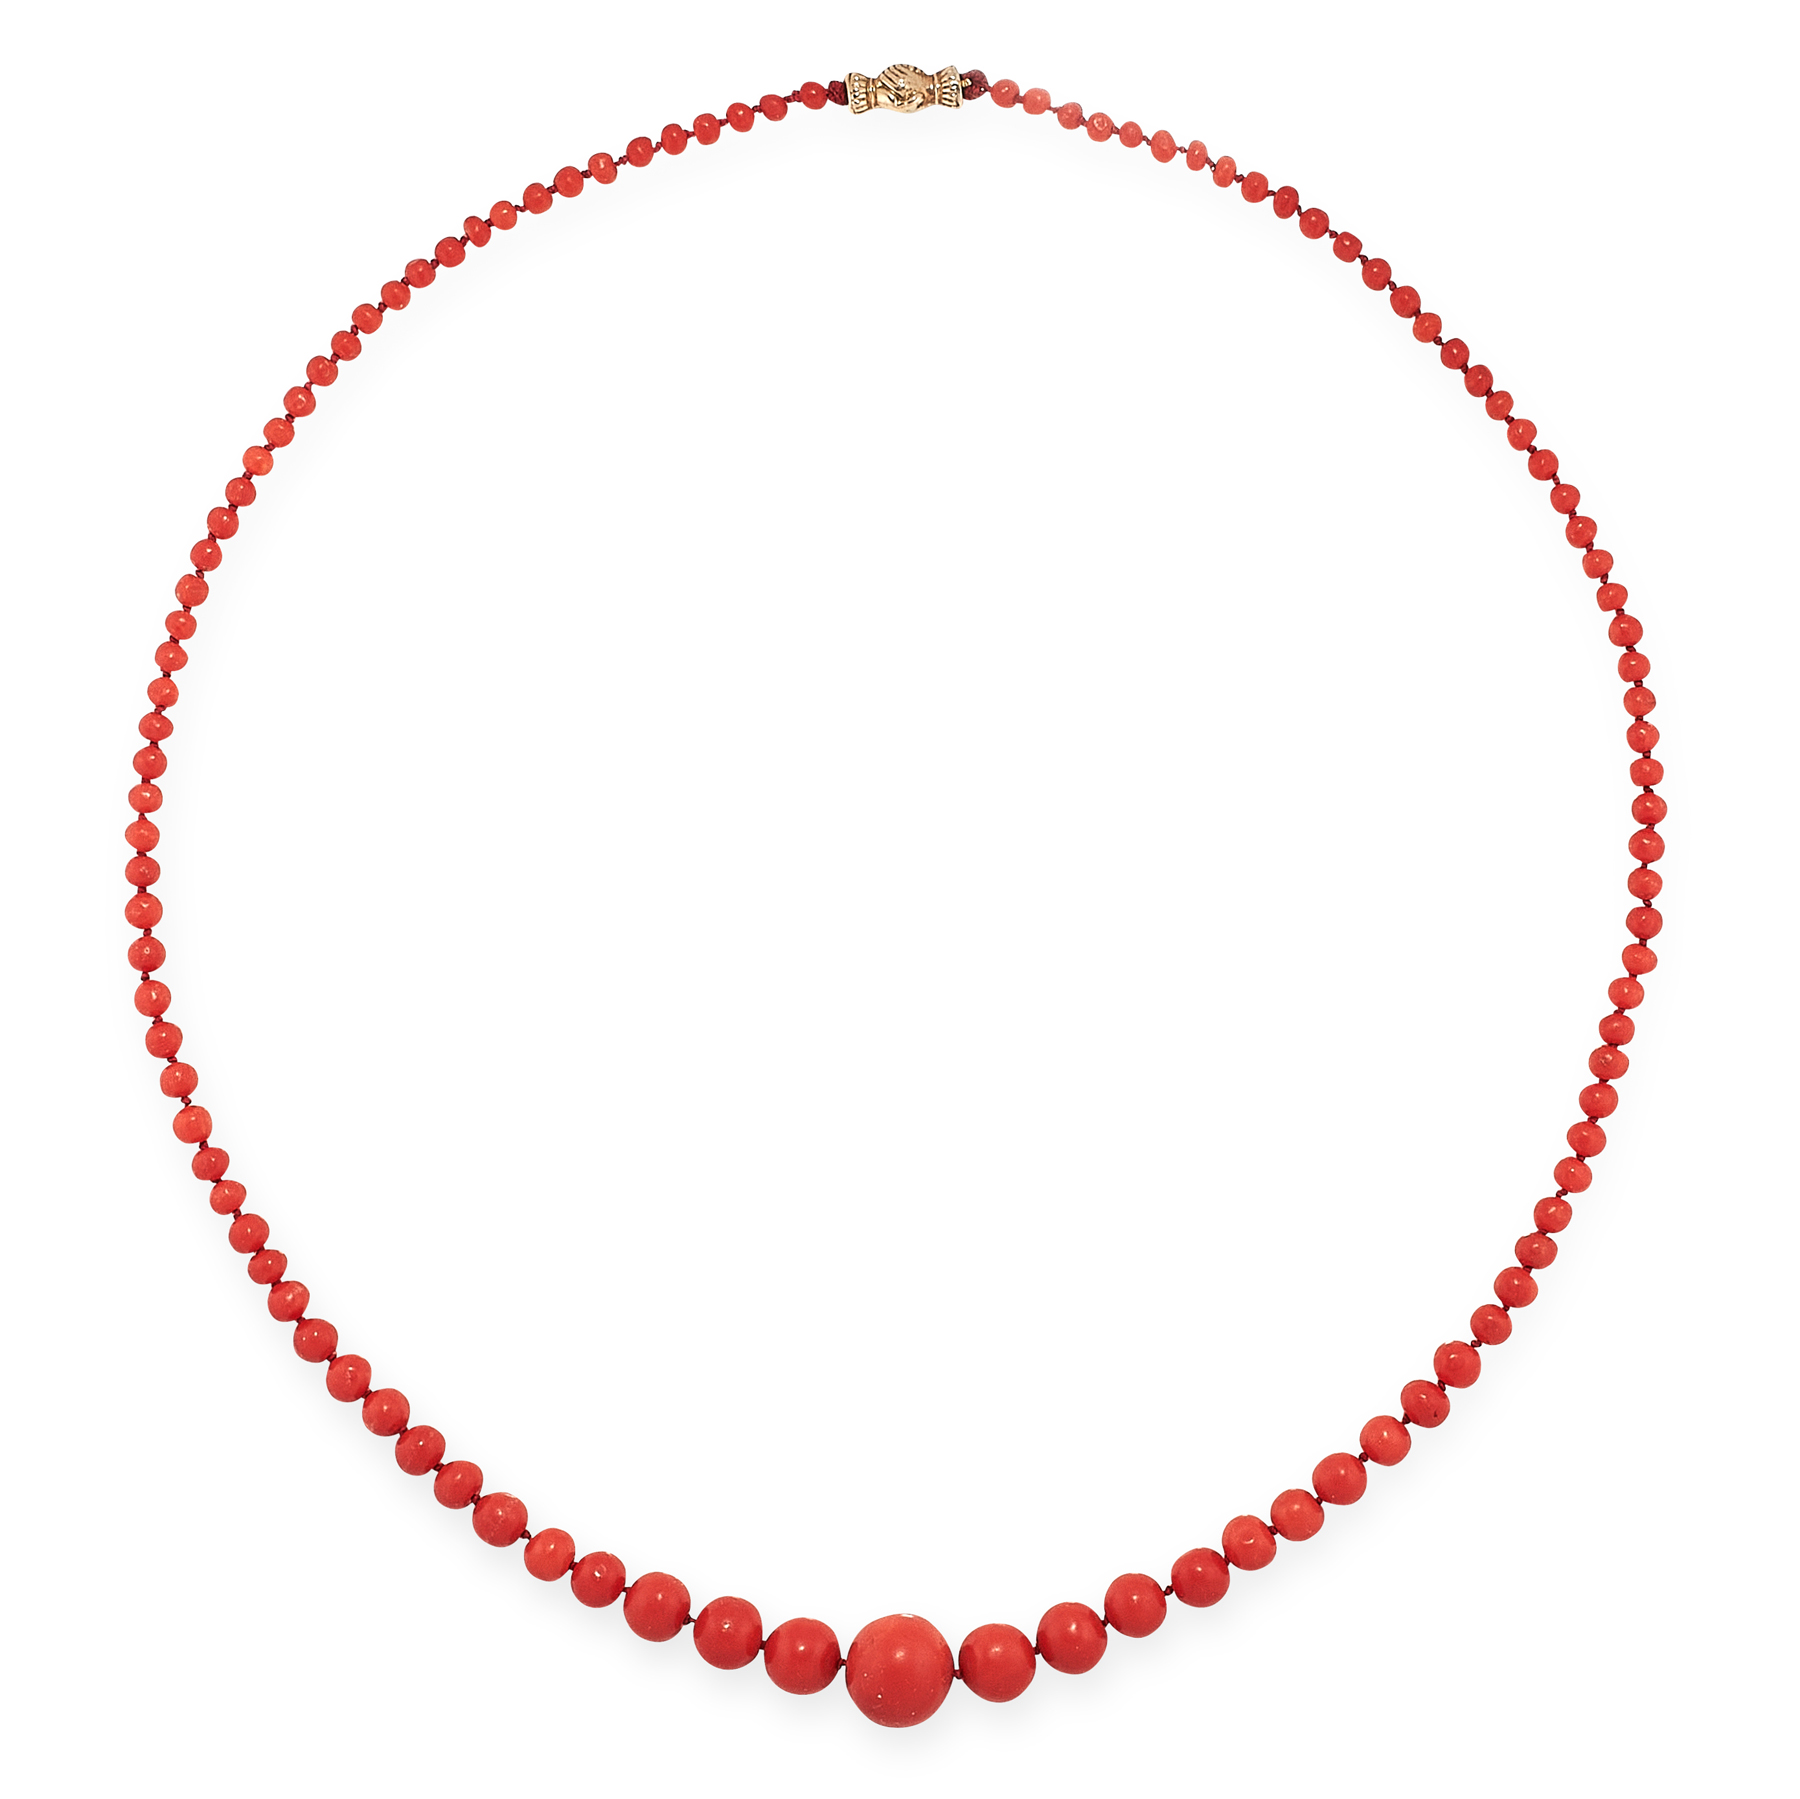 AN ANTIQUE CORAL BEAD NECKLACE in yellow gold, comprising a single row of one hundred and nine